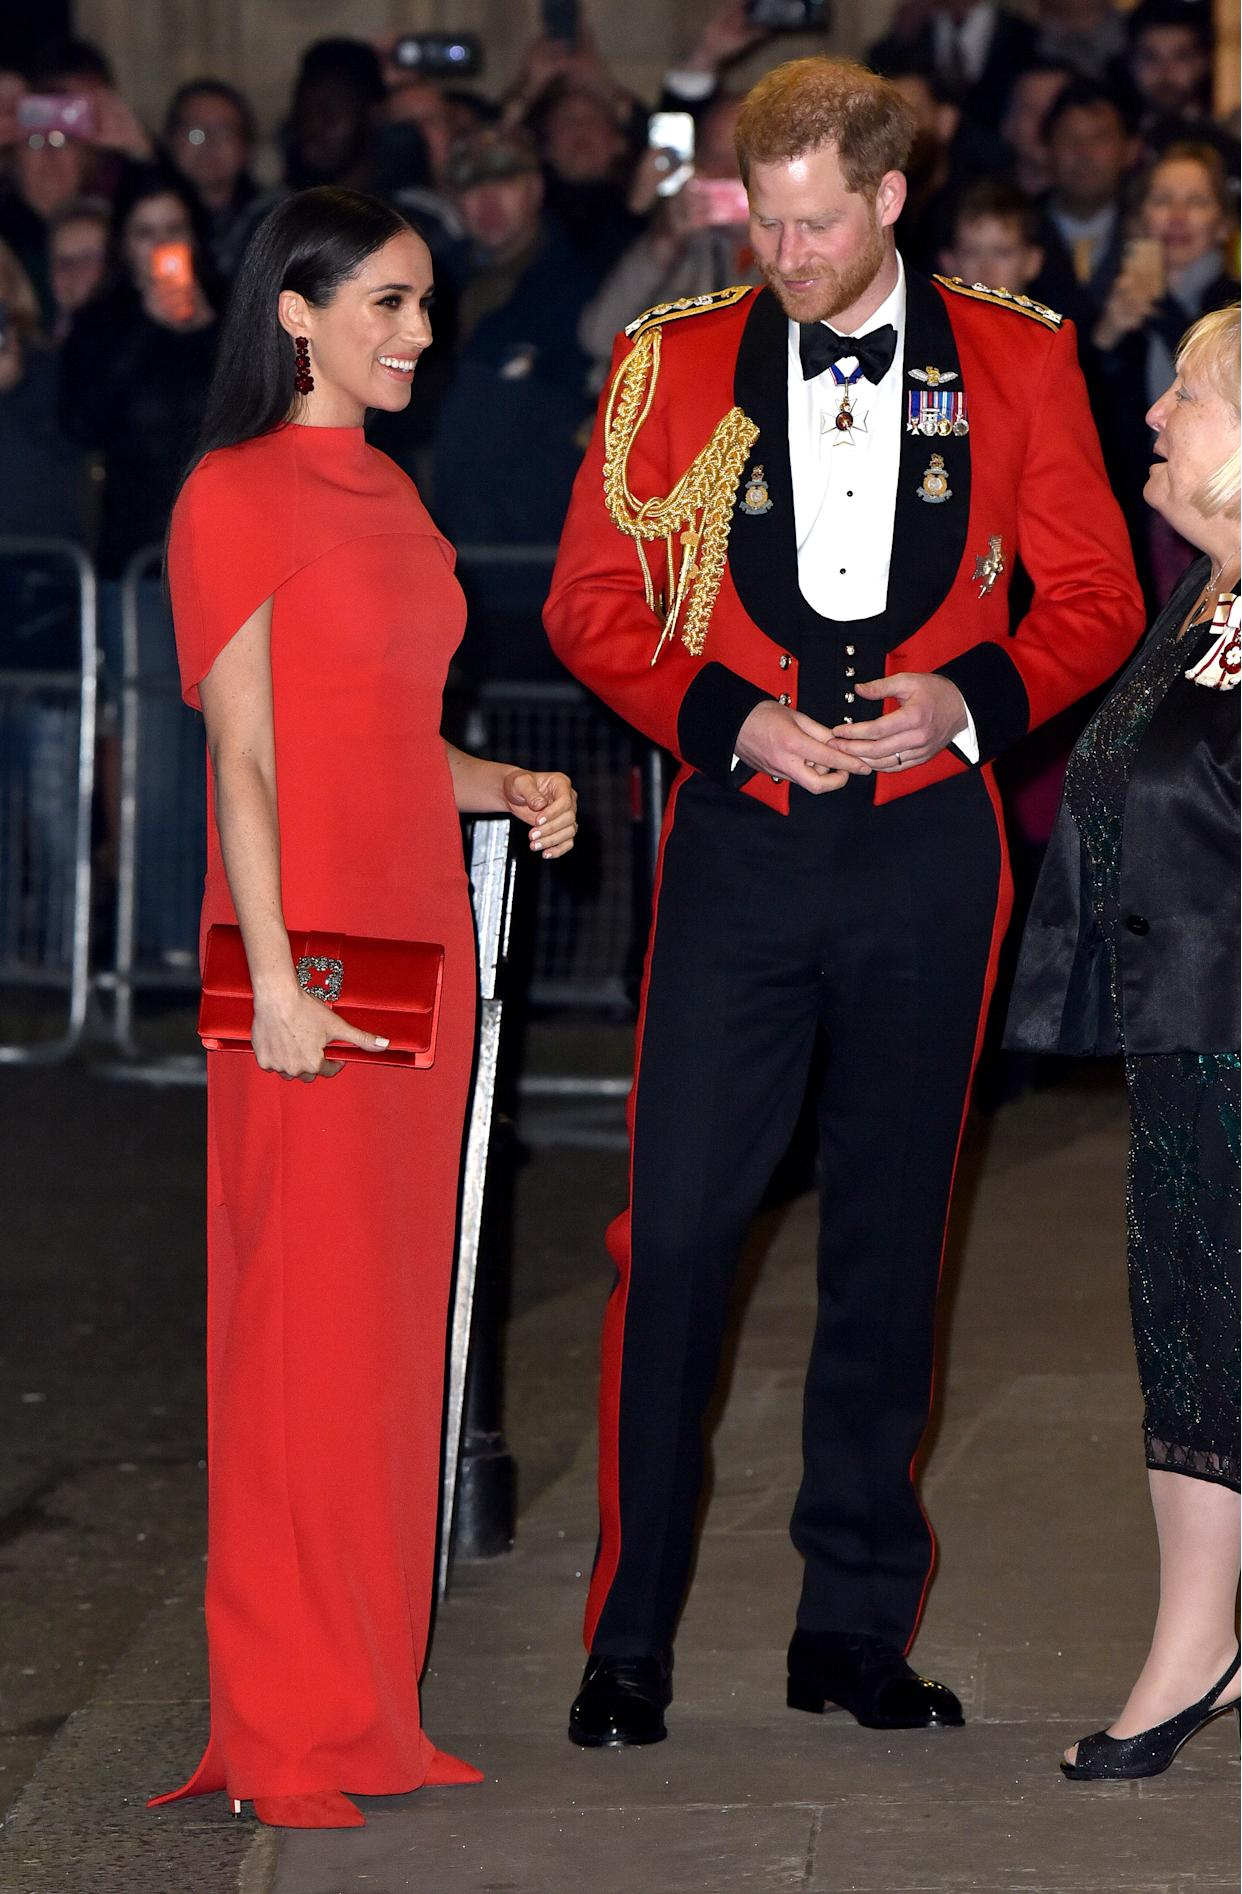 Meghan Markle and Prince Harry attended the Mountbatten Music Festival in London on March 07, 2020. (Photo by HGL/GC Images)